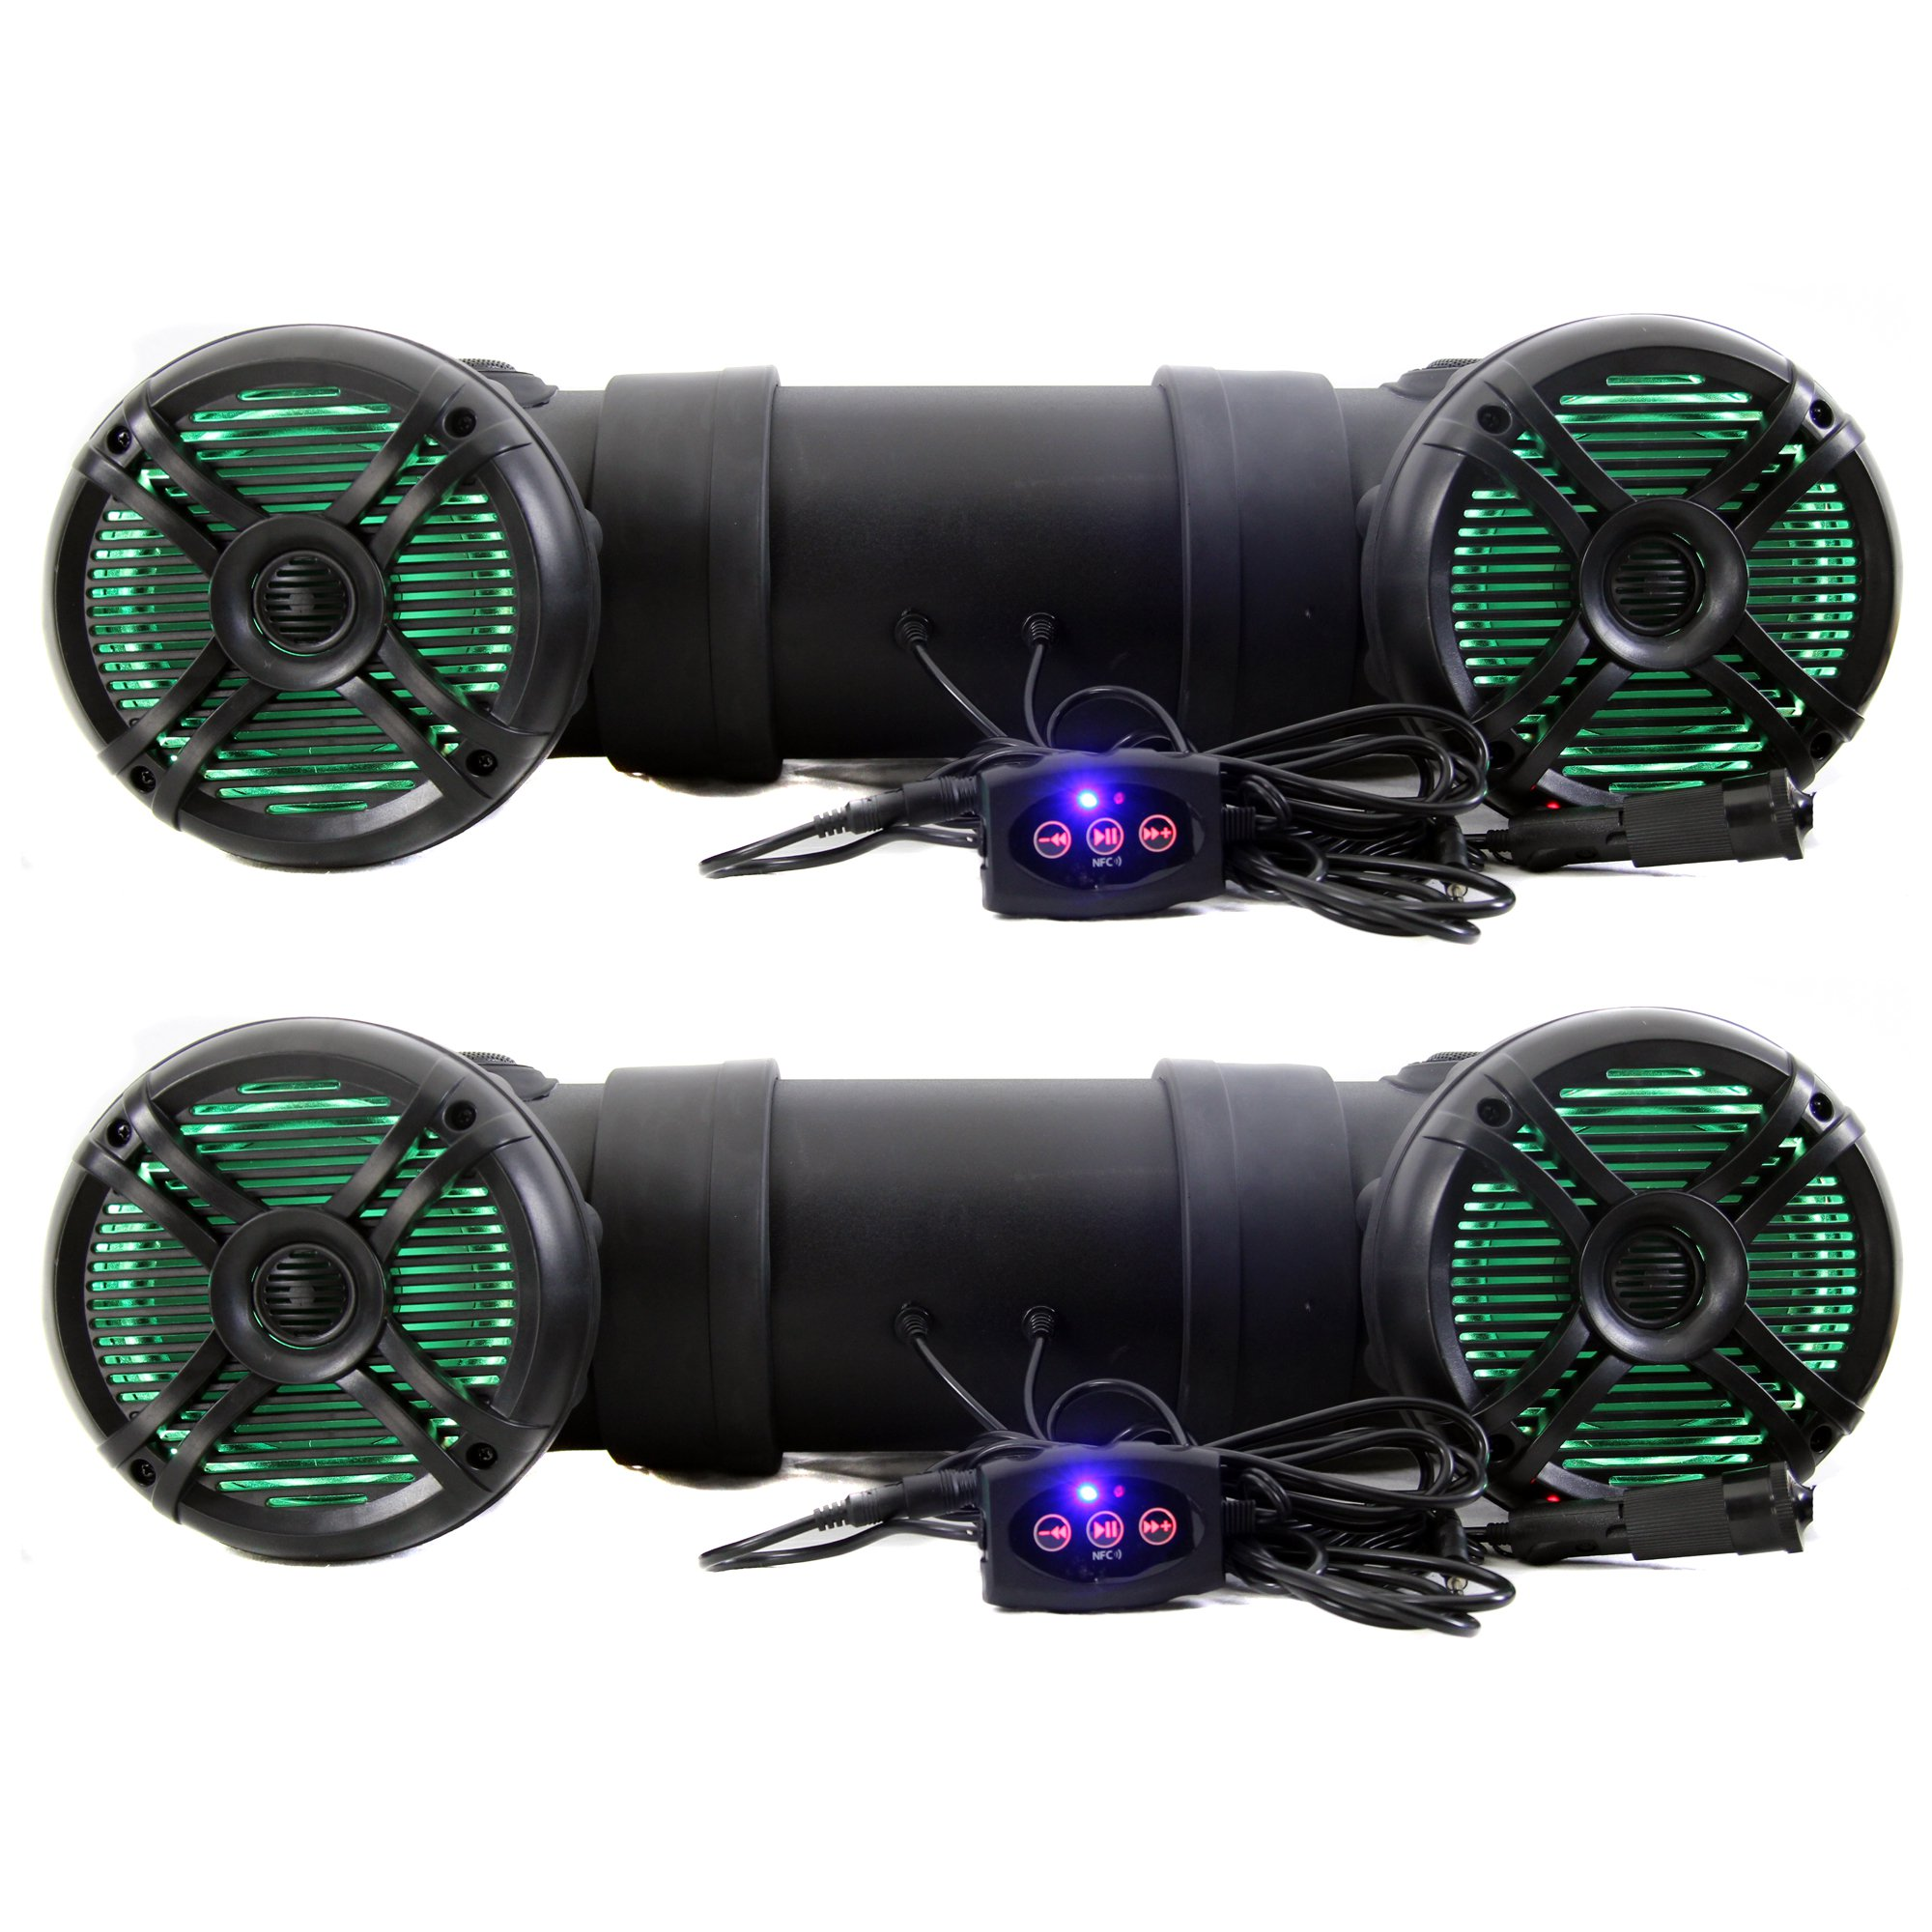 Q Power 500W Marine Bluetooth ATV Speaker System with LED Lights (2 Pack)